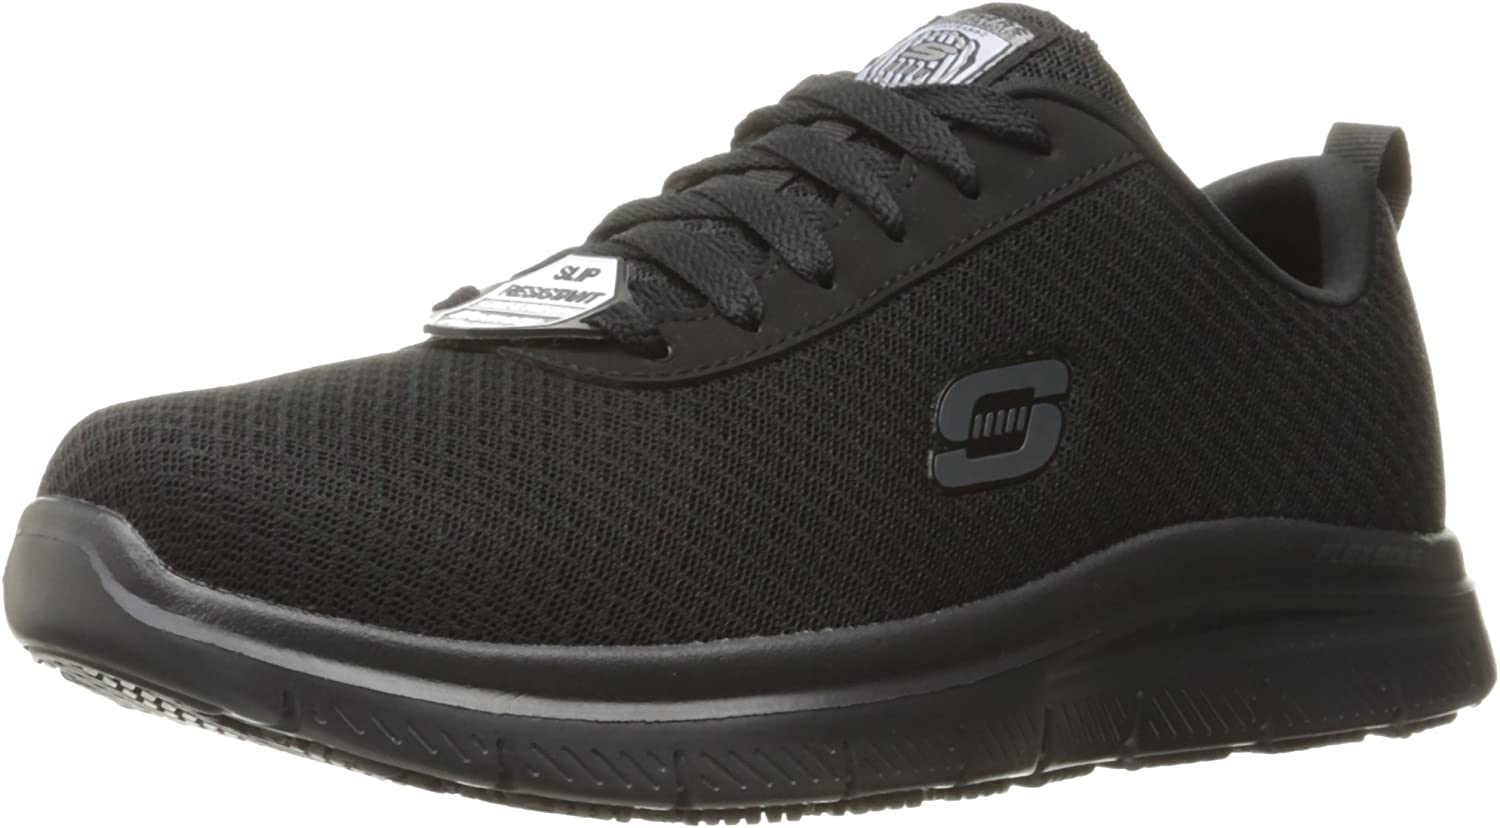 Skechers for Work Men's Flex Advantage Bendon Wide Work